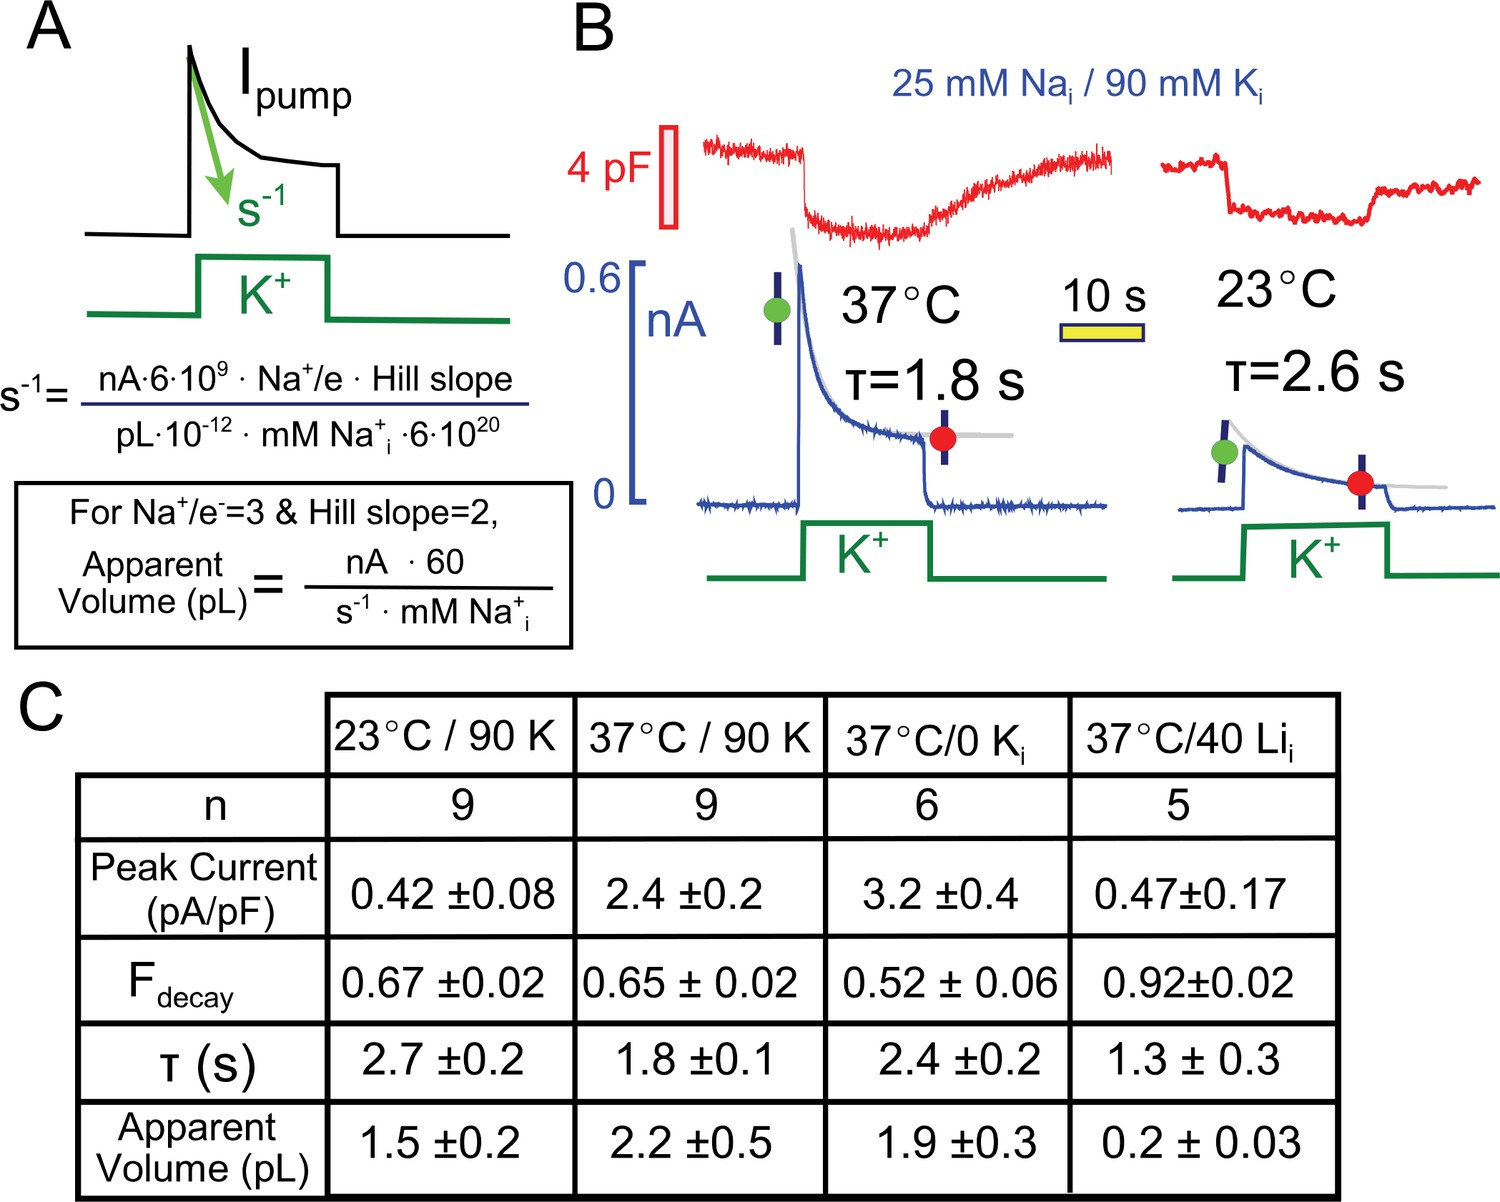 quantitative analysis of pump current decay in relation to predictions for  cytoplasmic na depletion